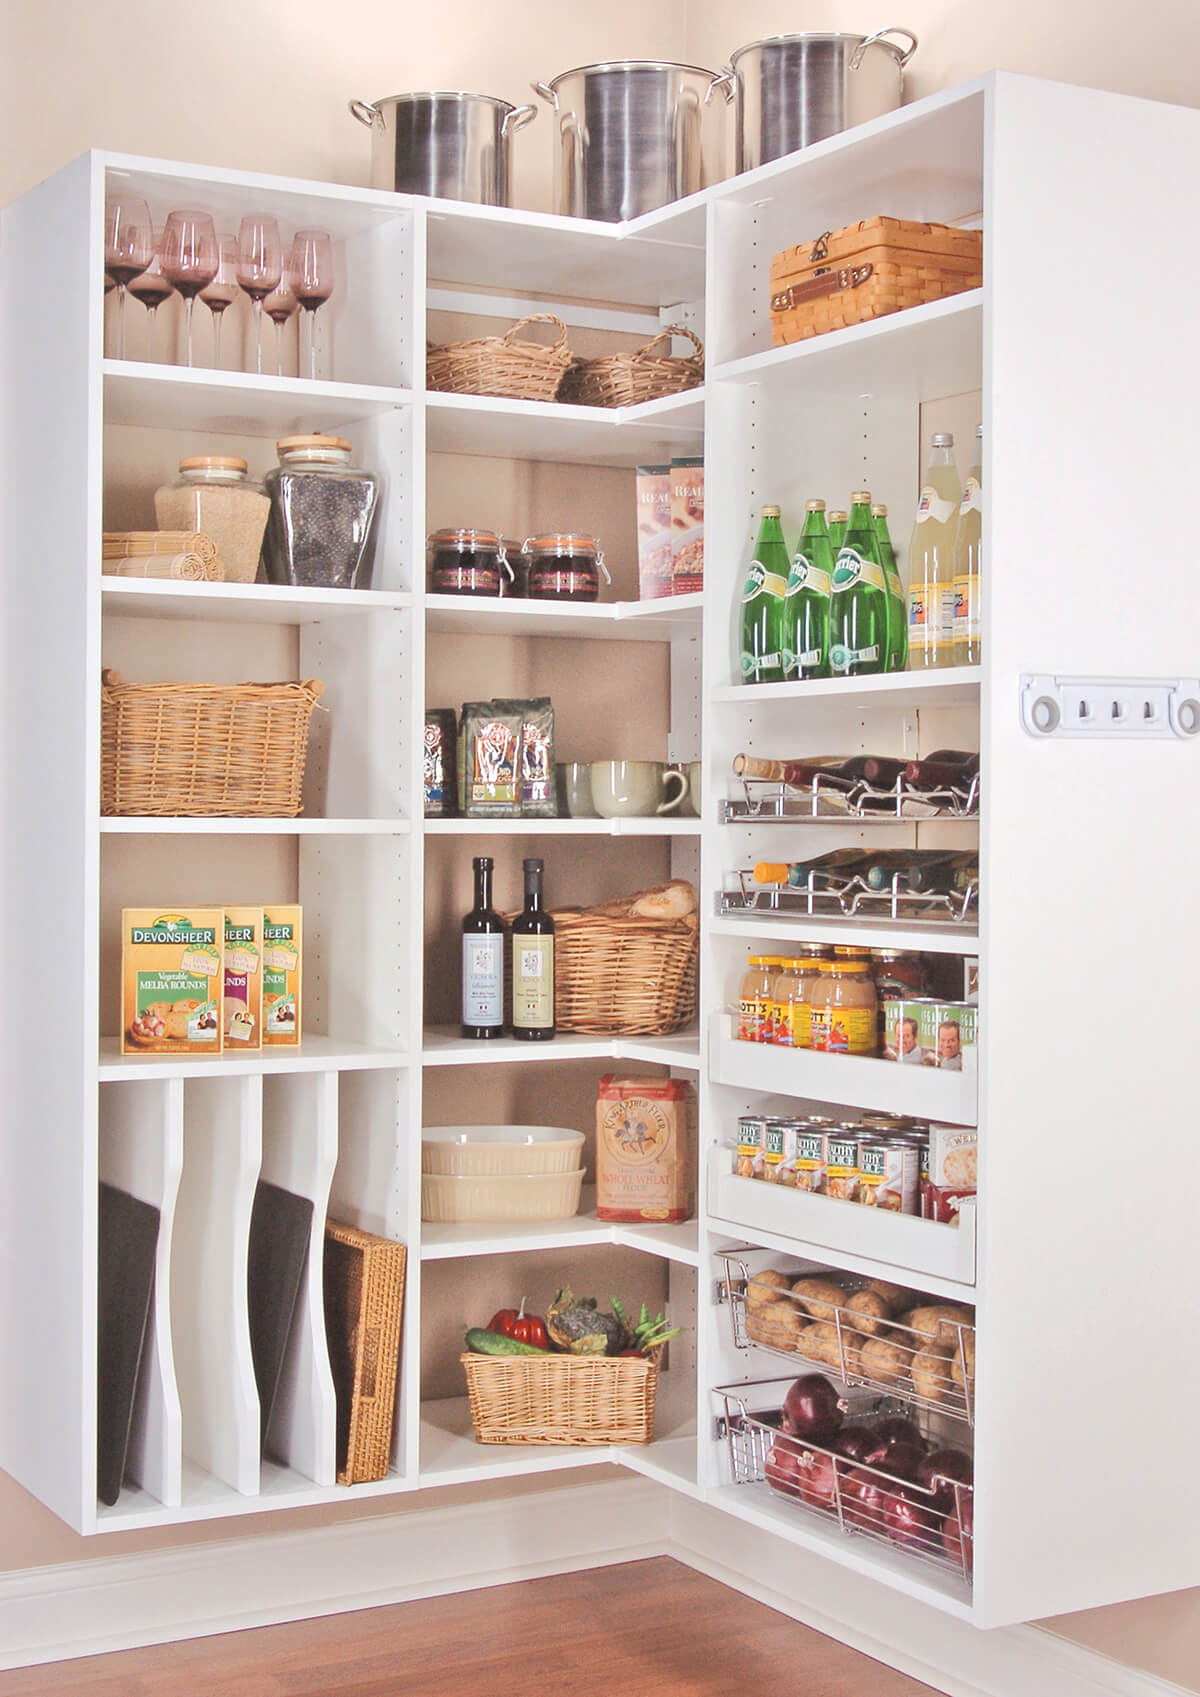 Corner Storage Idea for the Pantry